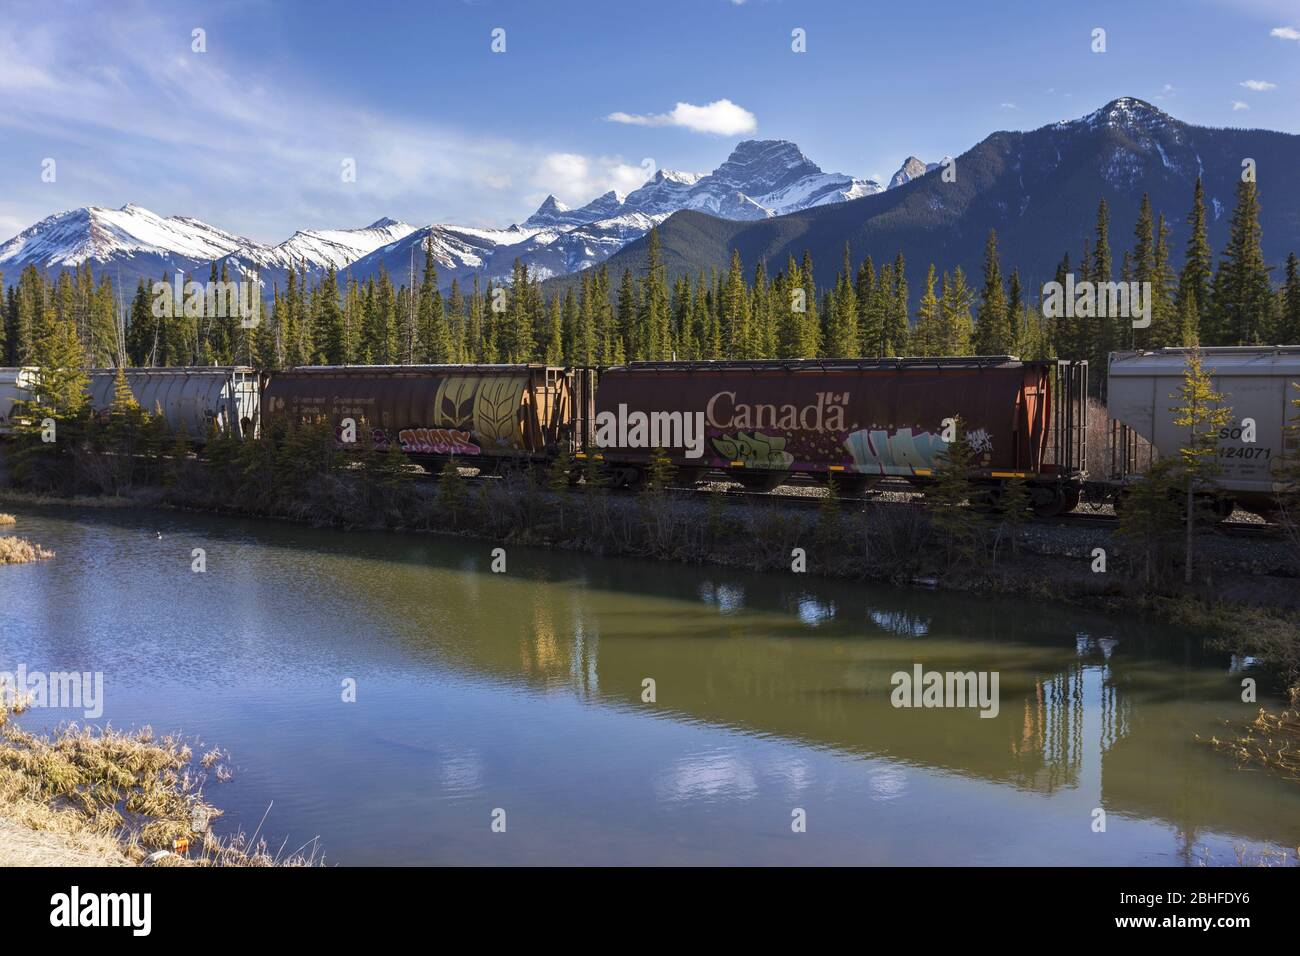 canadian-pacific-freight-train-railway-a